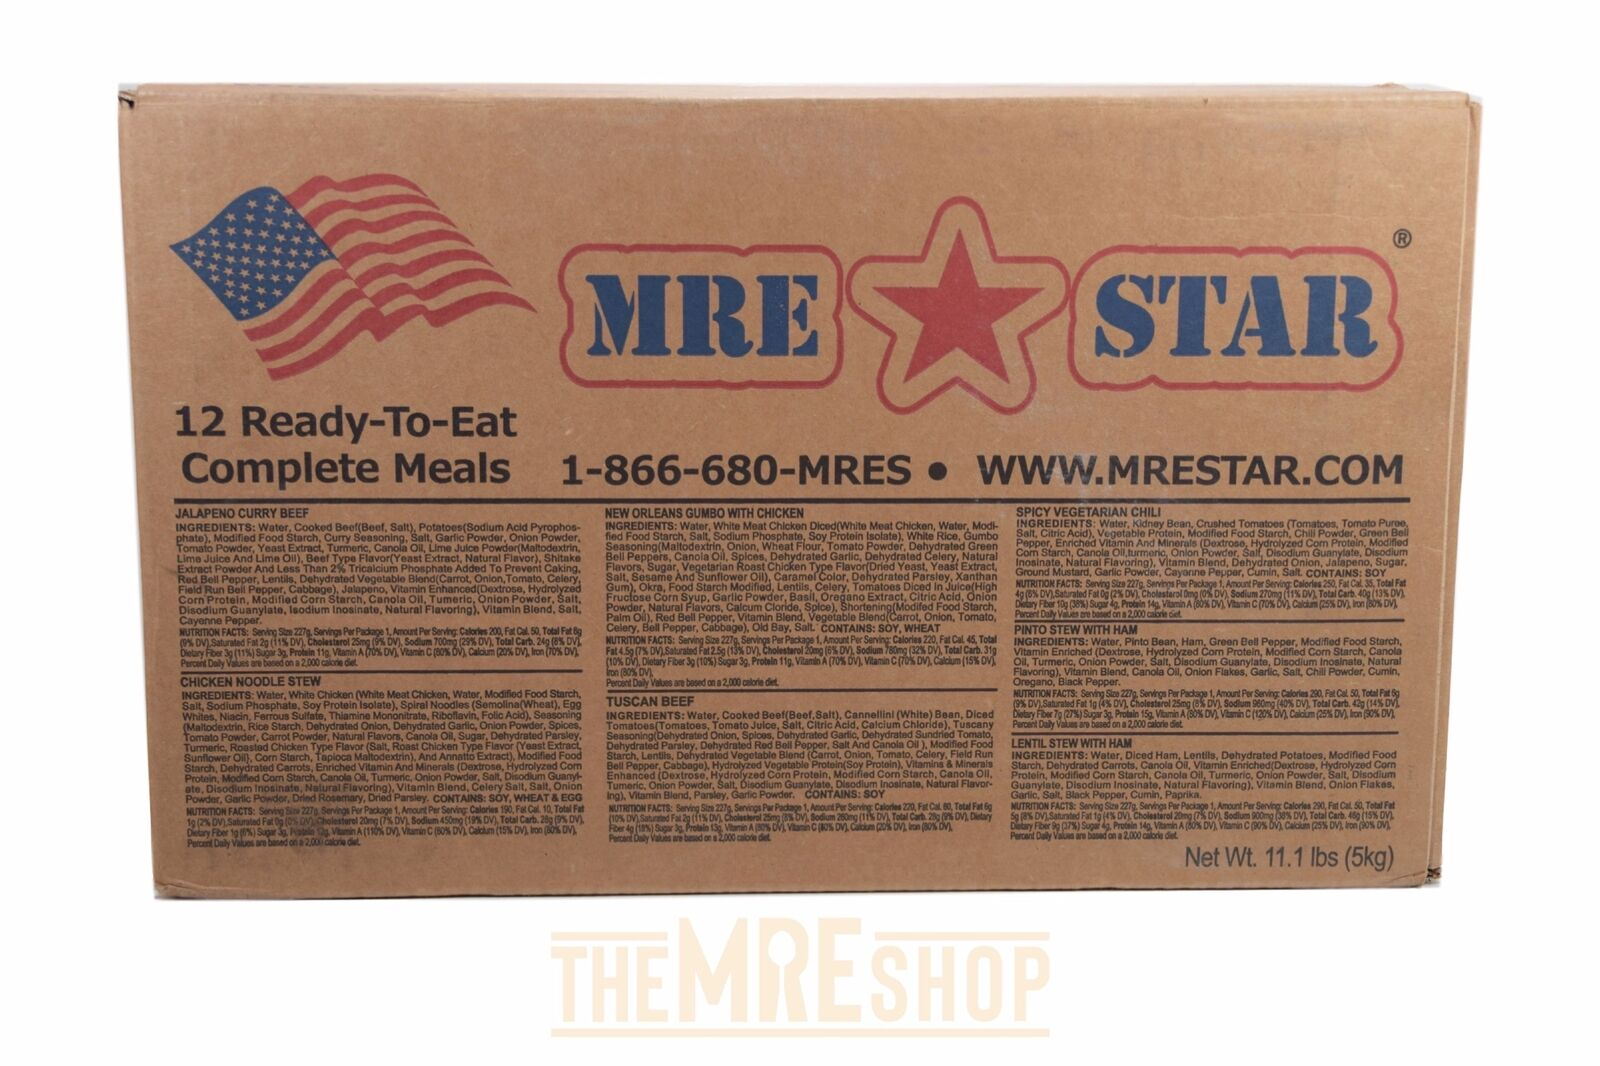 US Military MRE Meal Ready to Eat 12 Meals Fresh Dates Emergency Food Survival